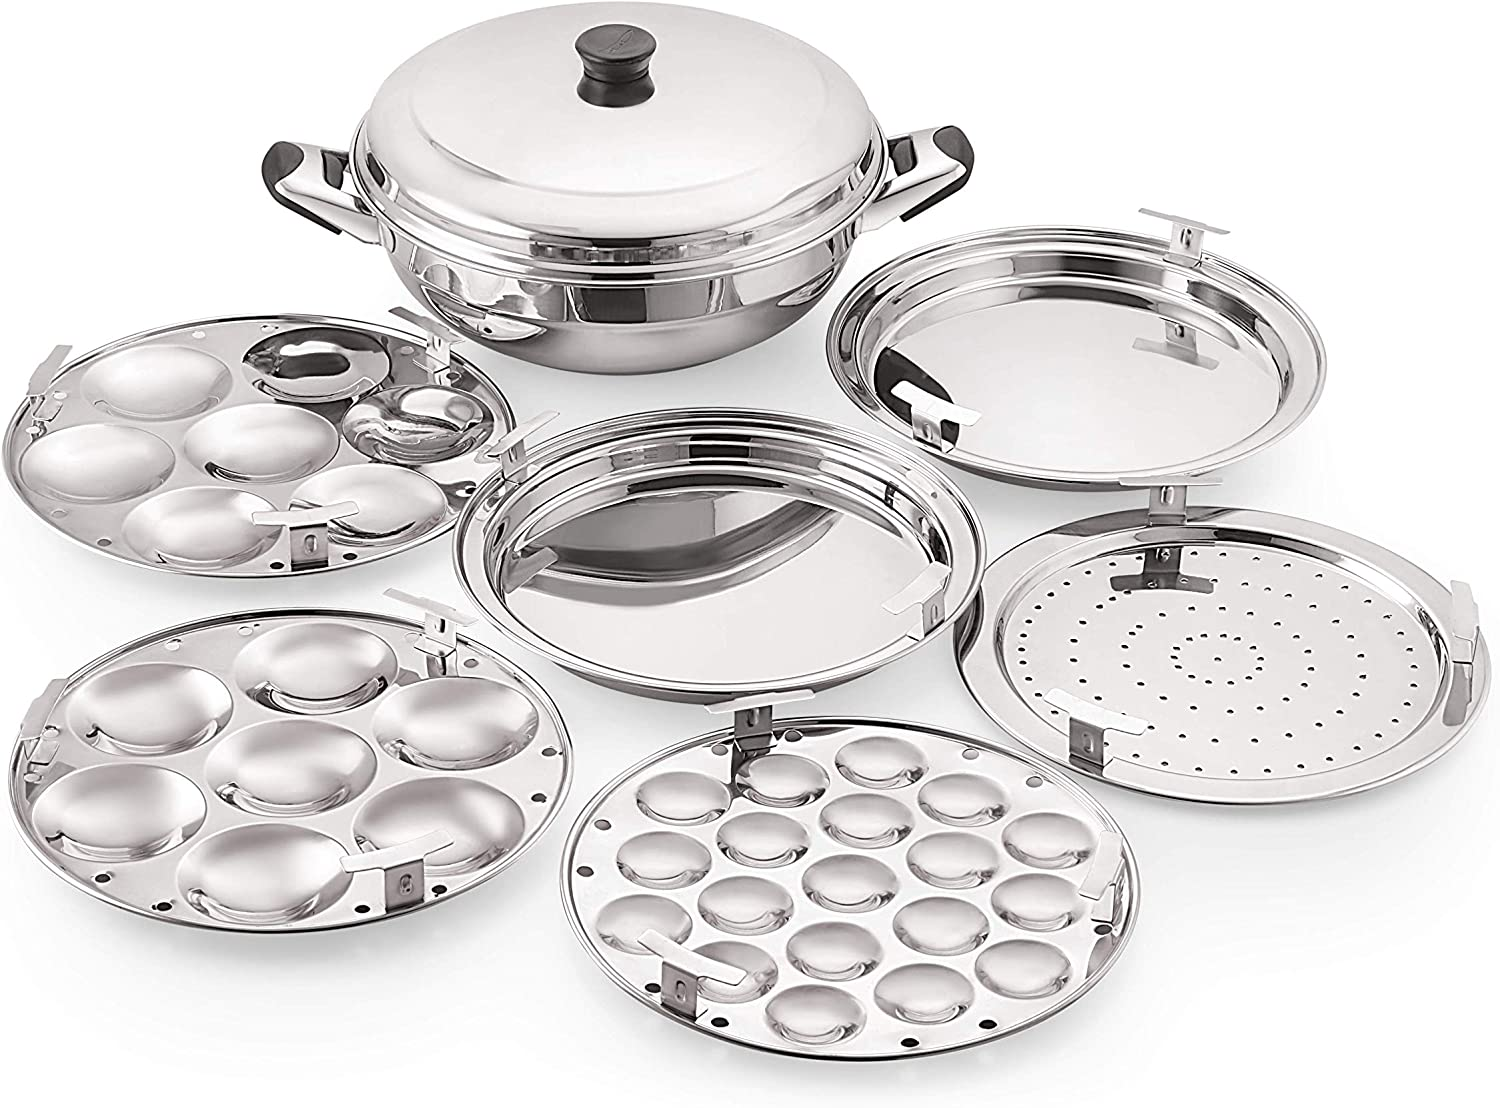 Komal Multi Kadai with Induction Bottom 6 Pcs Set,1-Steamer Plate,1 Mini Idli Plate (19 Cavities),2 Idli Plates,2 Dhokla Plates,Silver